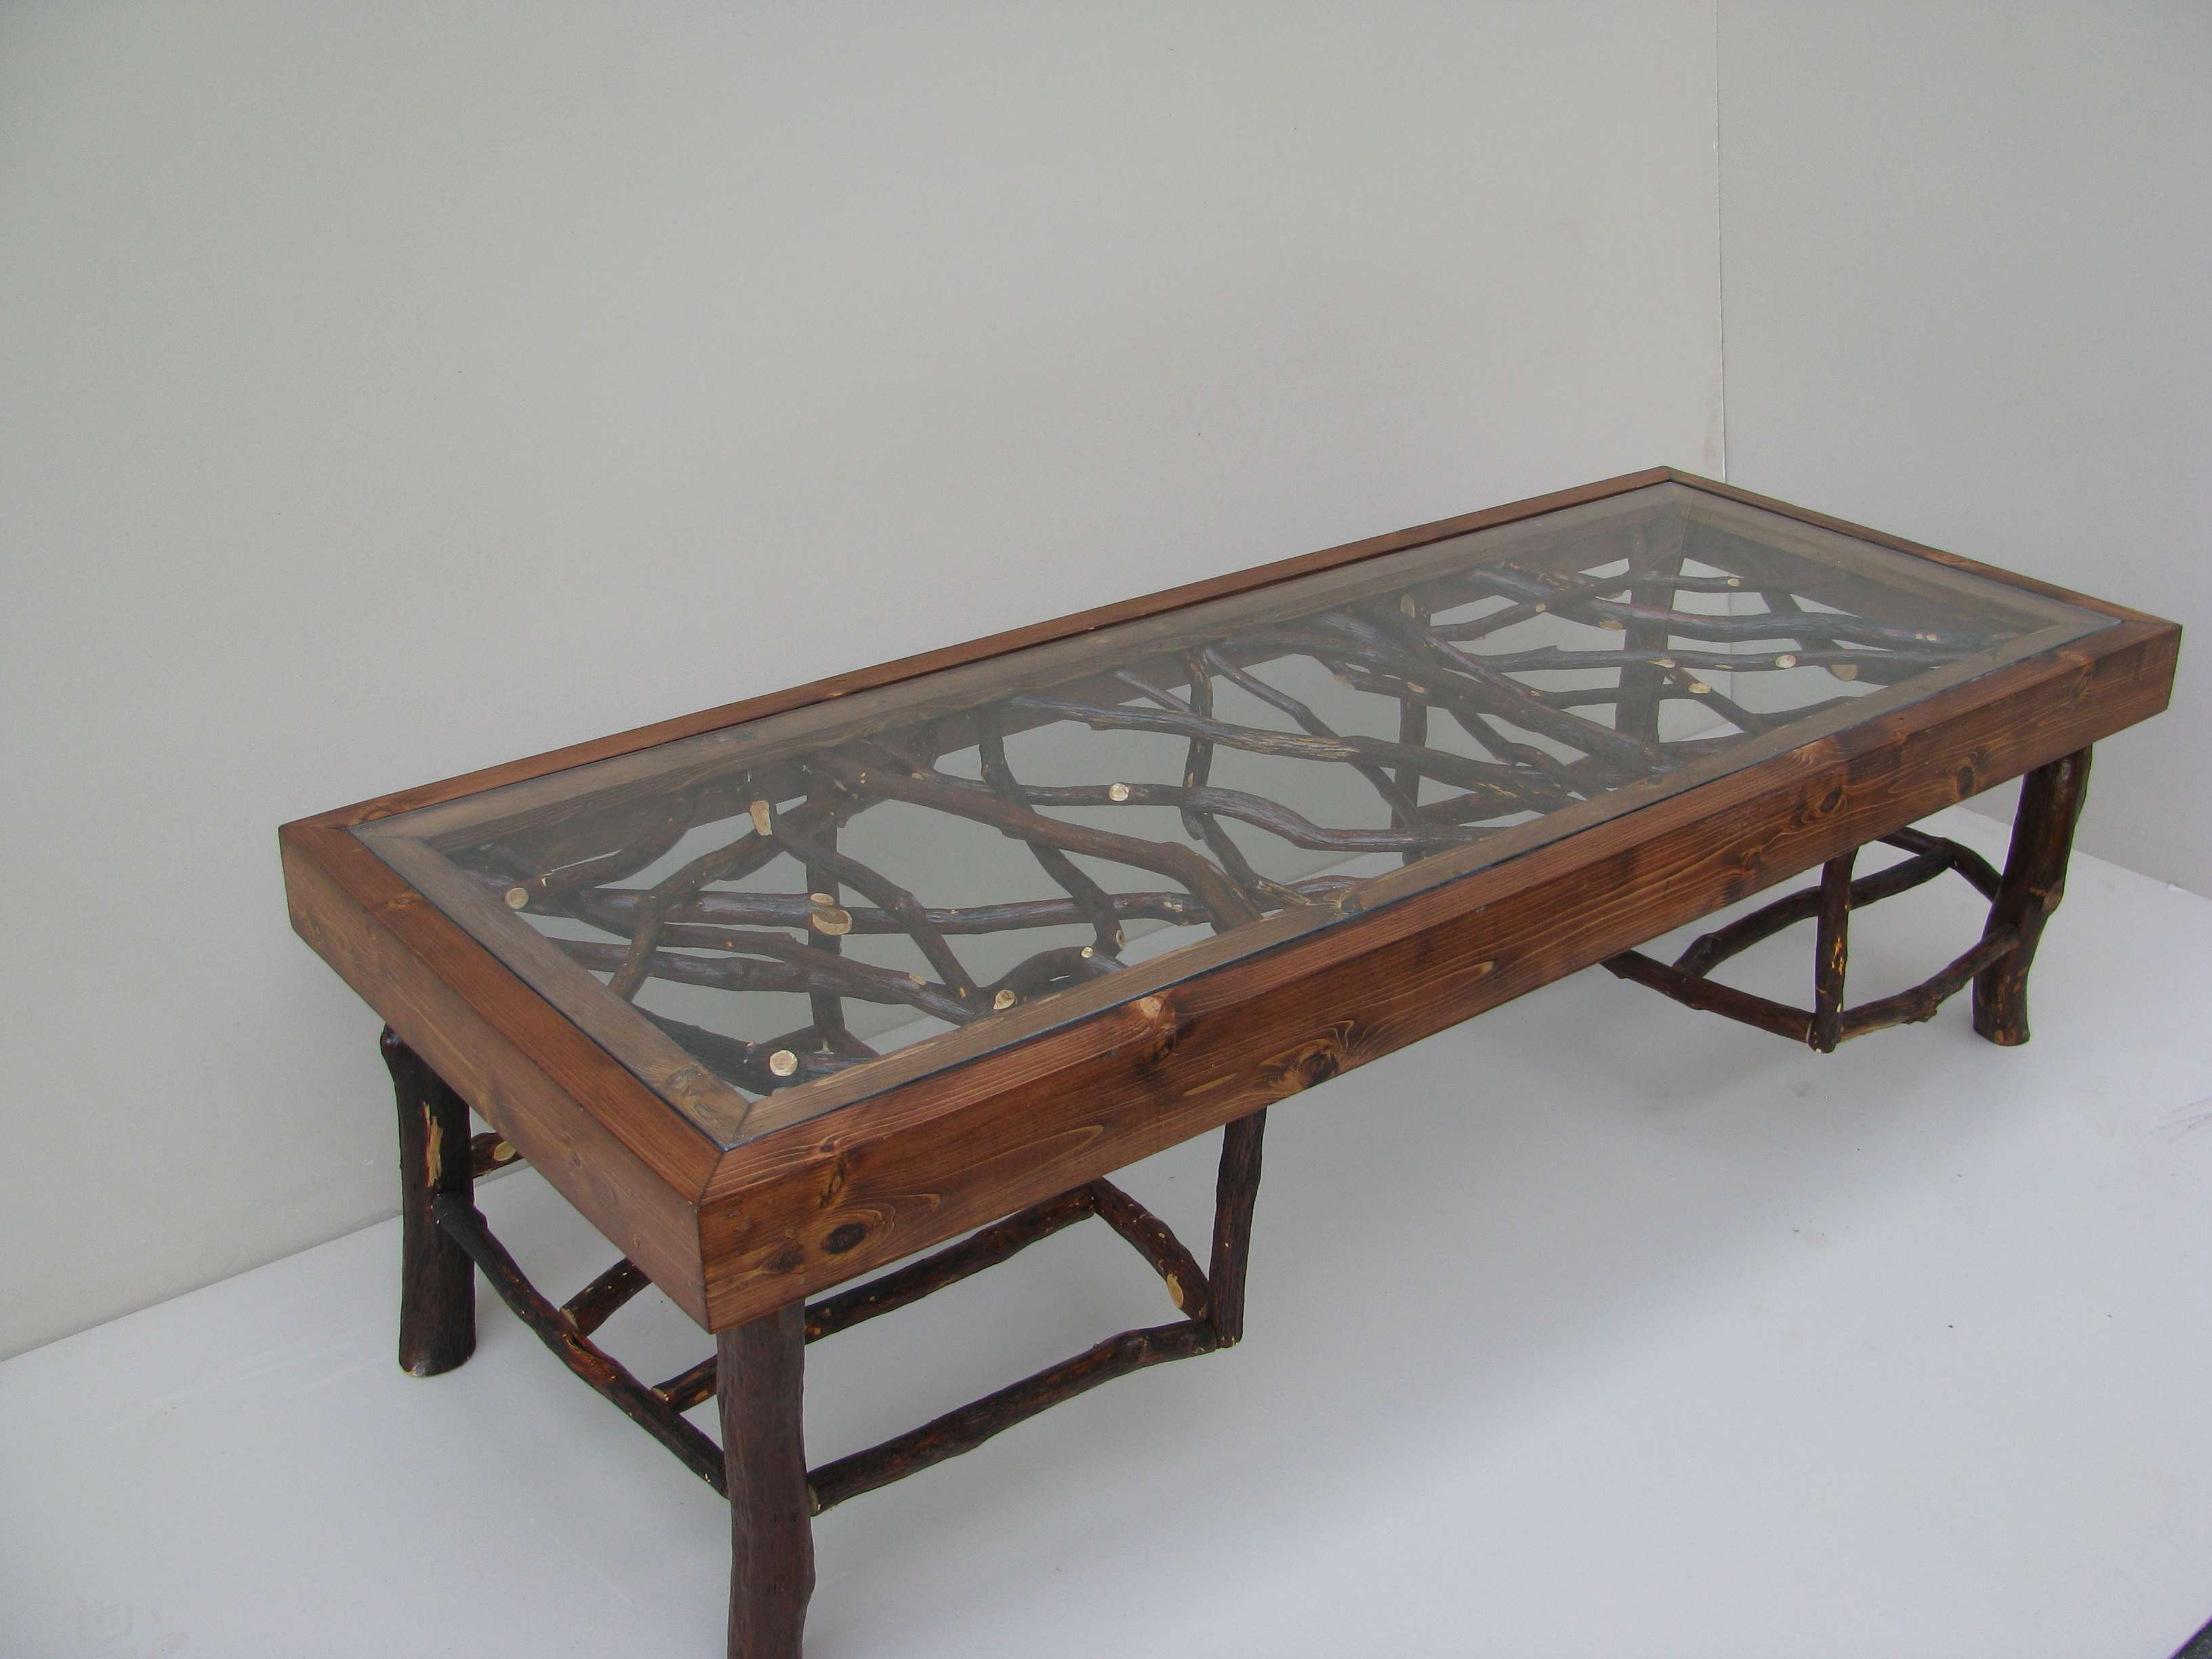 View Gallery Of Reclaimed Wood And Glass Coffee Tables Showing - Rustic wood and glass coffee table